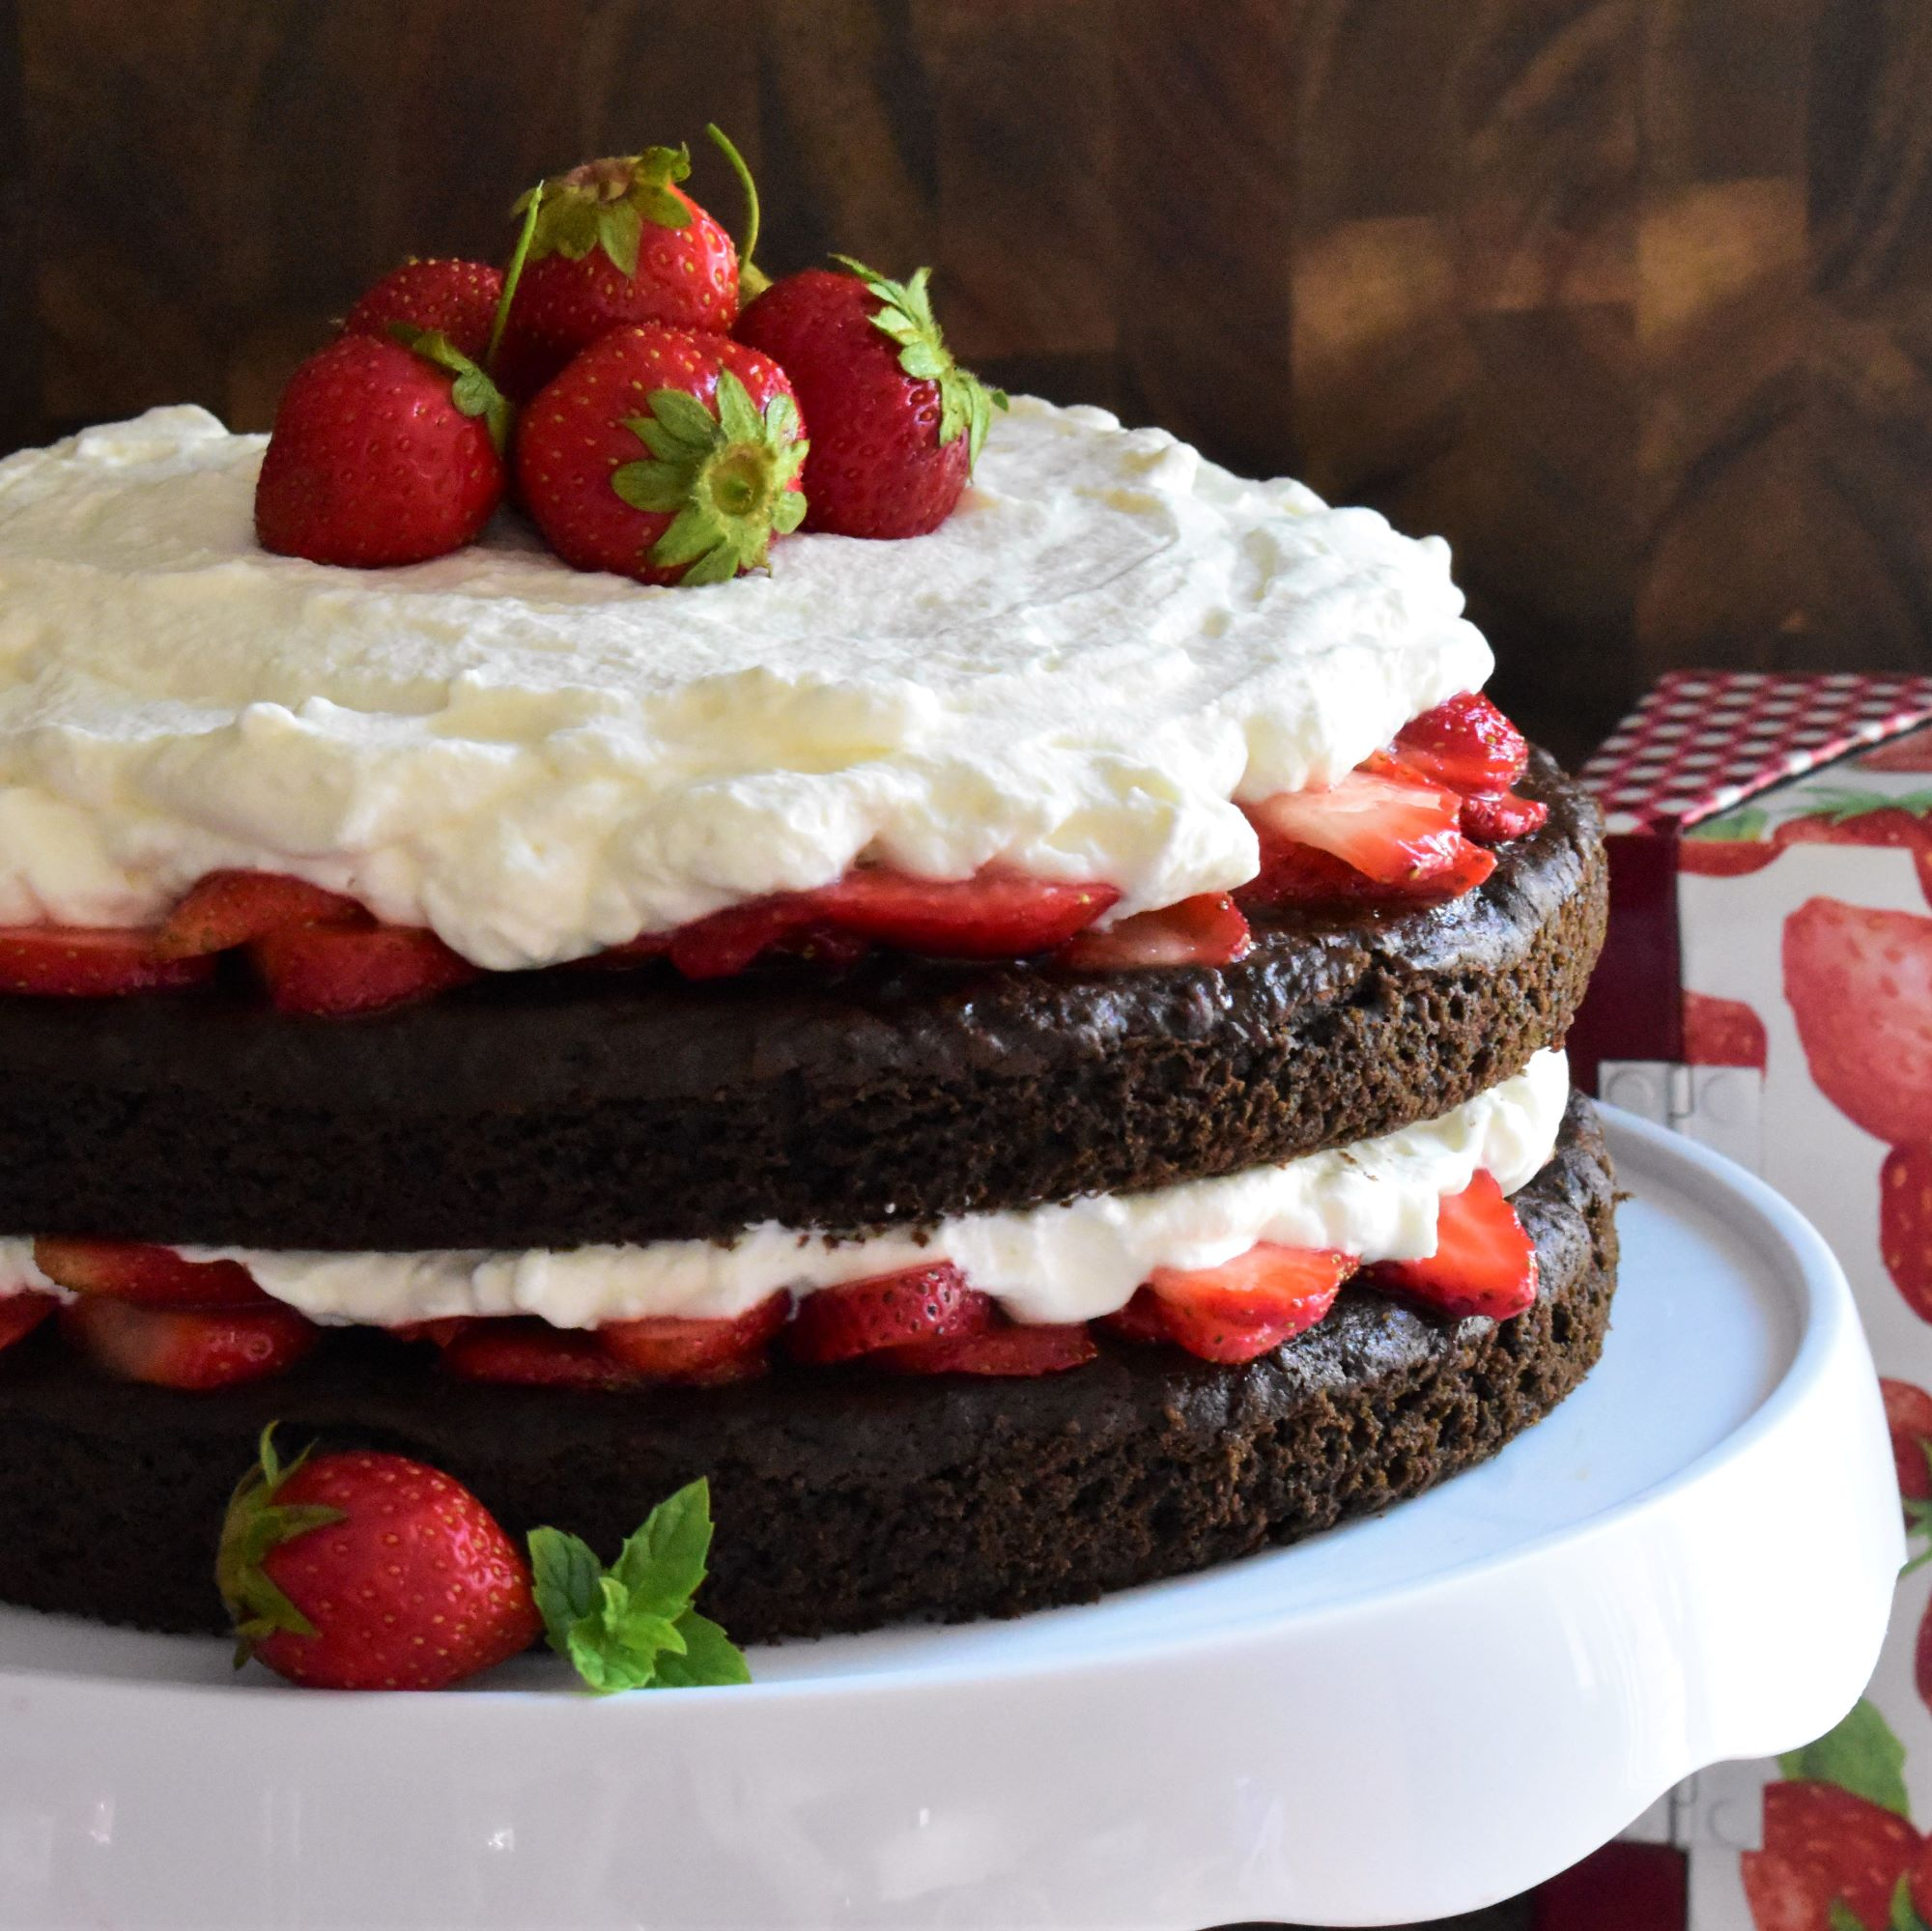 a two-layer Chocolate Strawberry Shortcake on a white cake stand